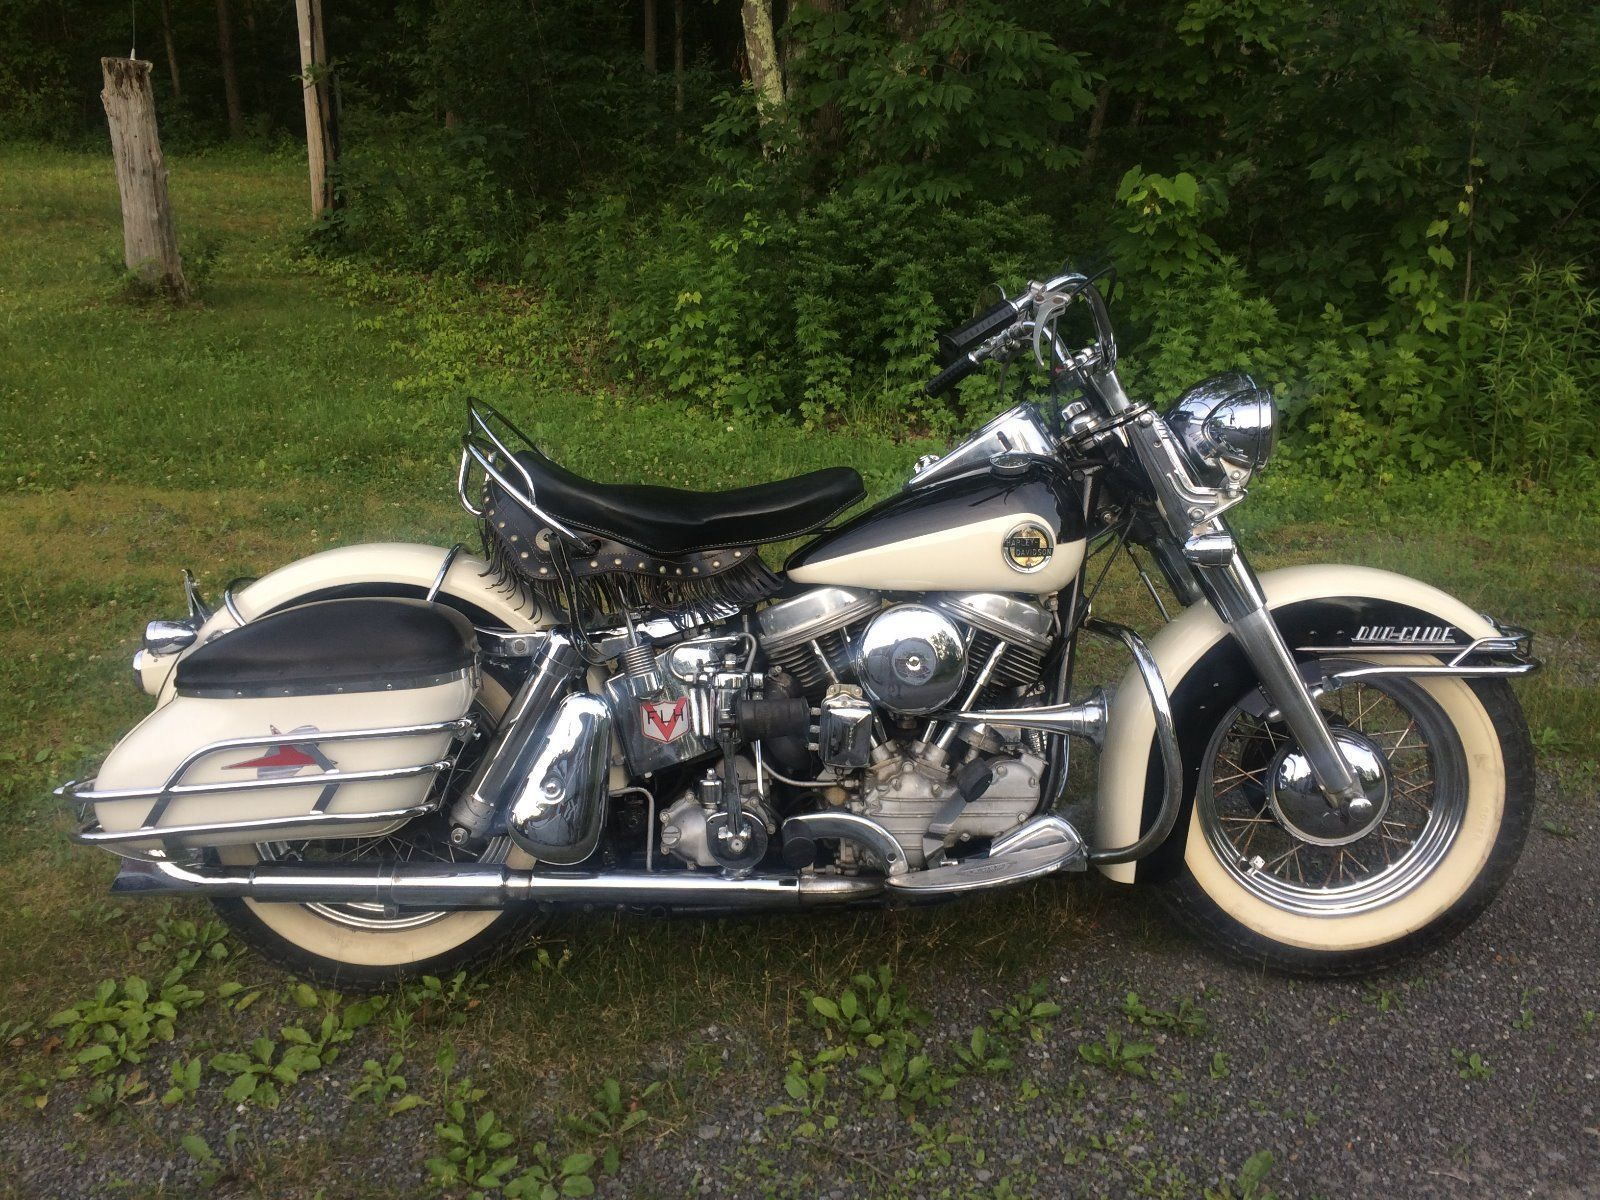 Forsale 1958 Harley Davidson Touring Price 16,700.00